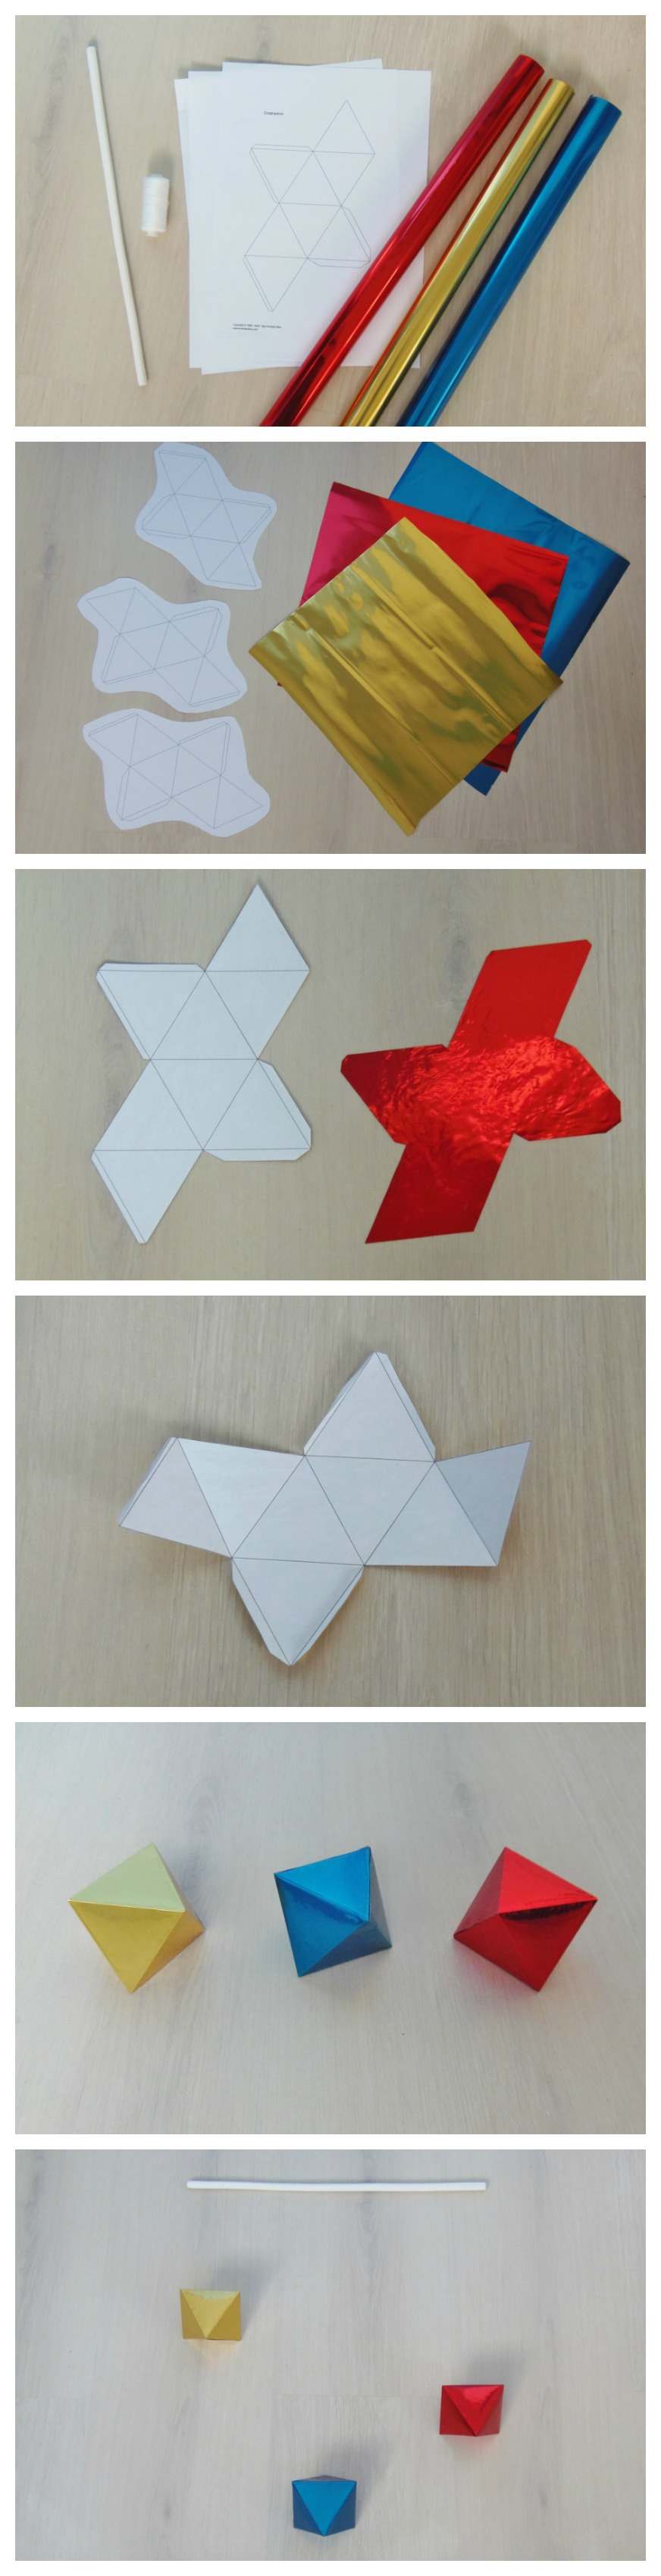 m vil de beb octaedros tutorial diy octahedron baby mobile montessori en casa. Black Bedroom Furniture Sets. Home Design Ideas